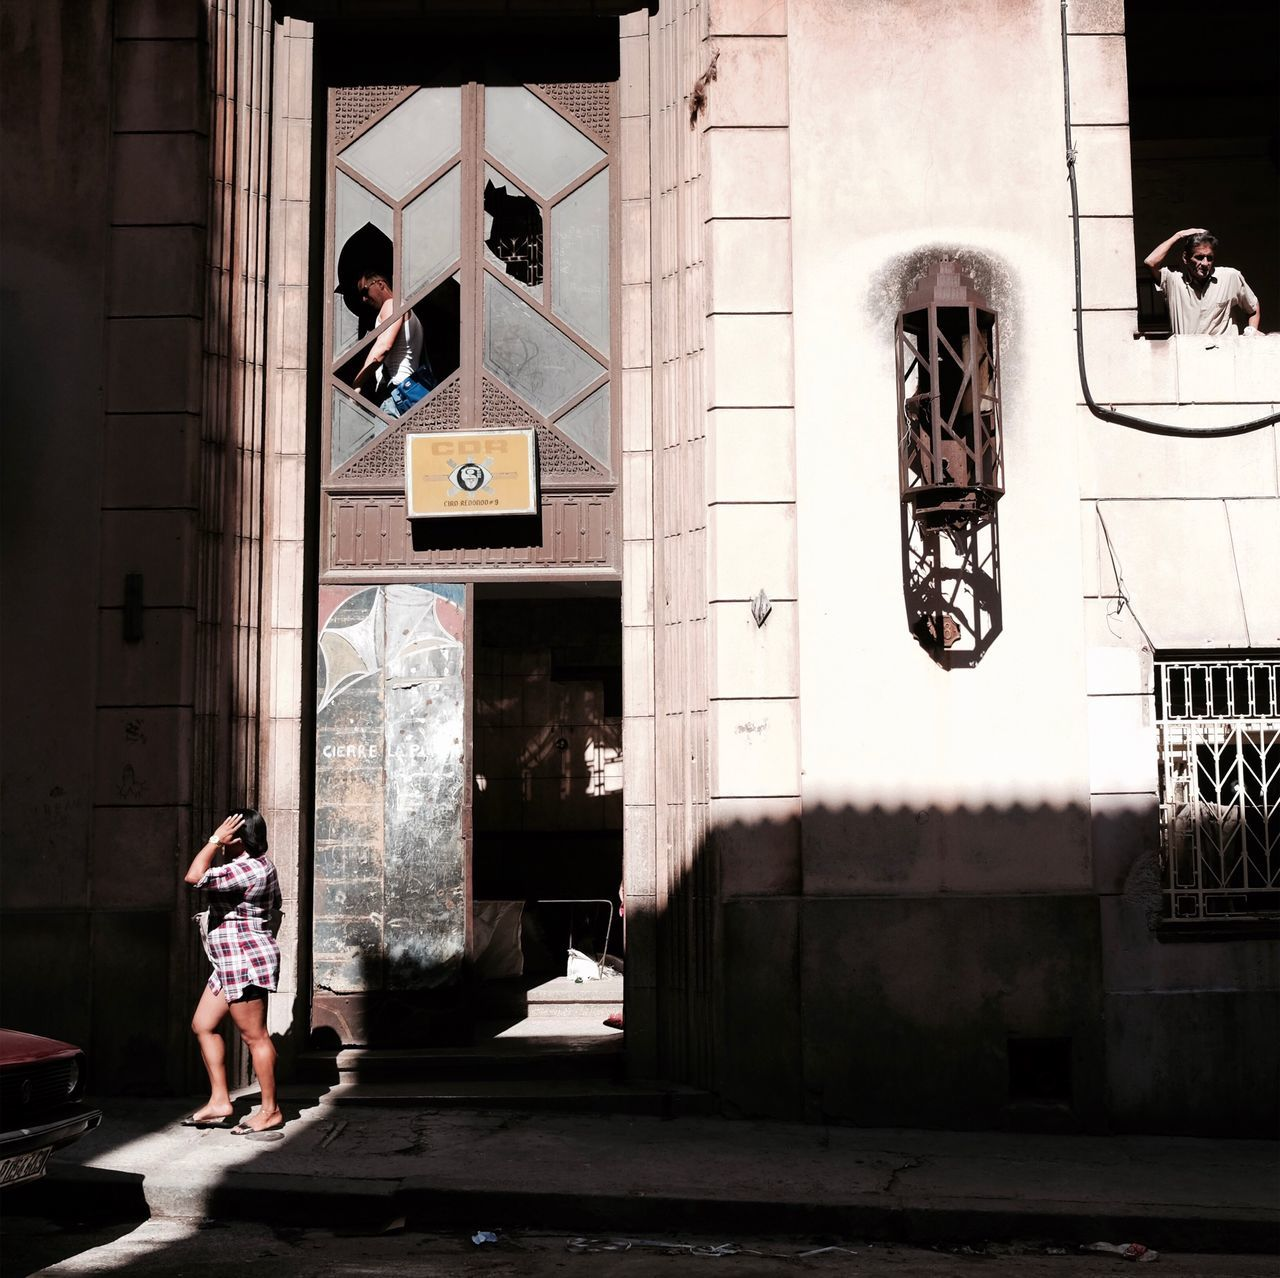 Full Length Real People Architecture Building Exterior Built Structure One Person Standing Casual Clothing Walking Day Outdoors Women Photographing Men Adult People Havana Cuba Travel